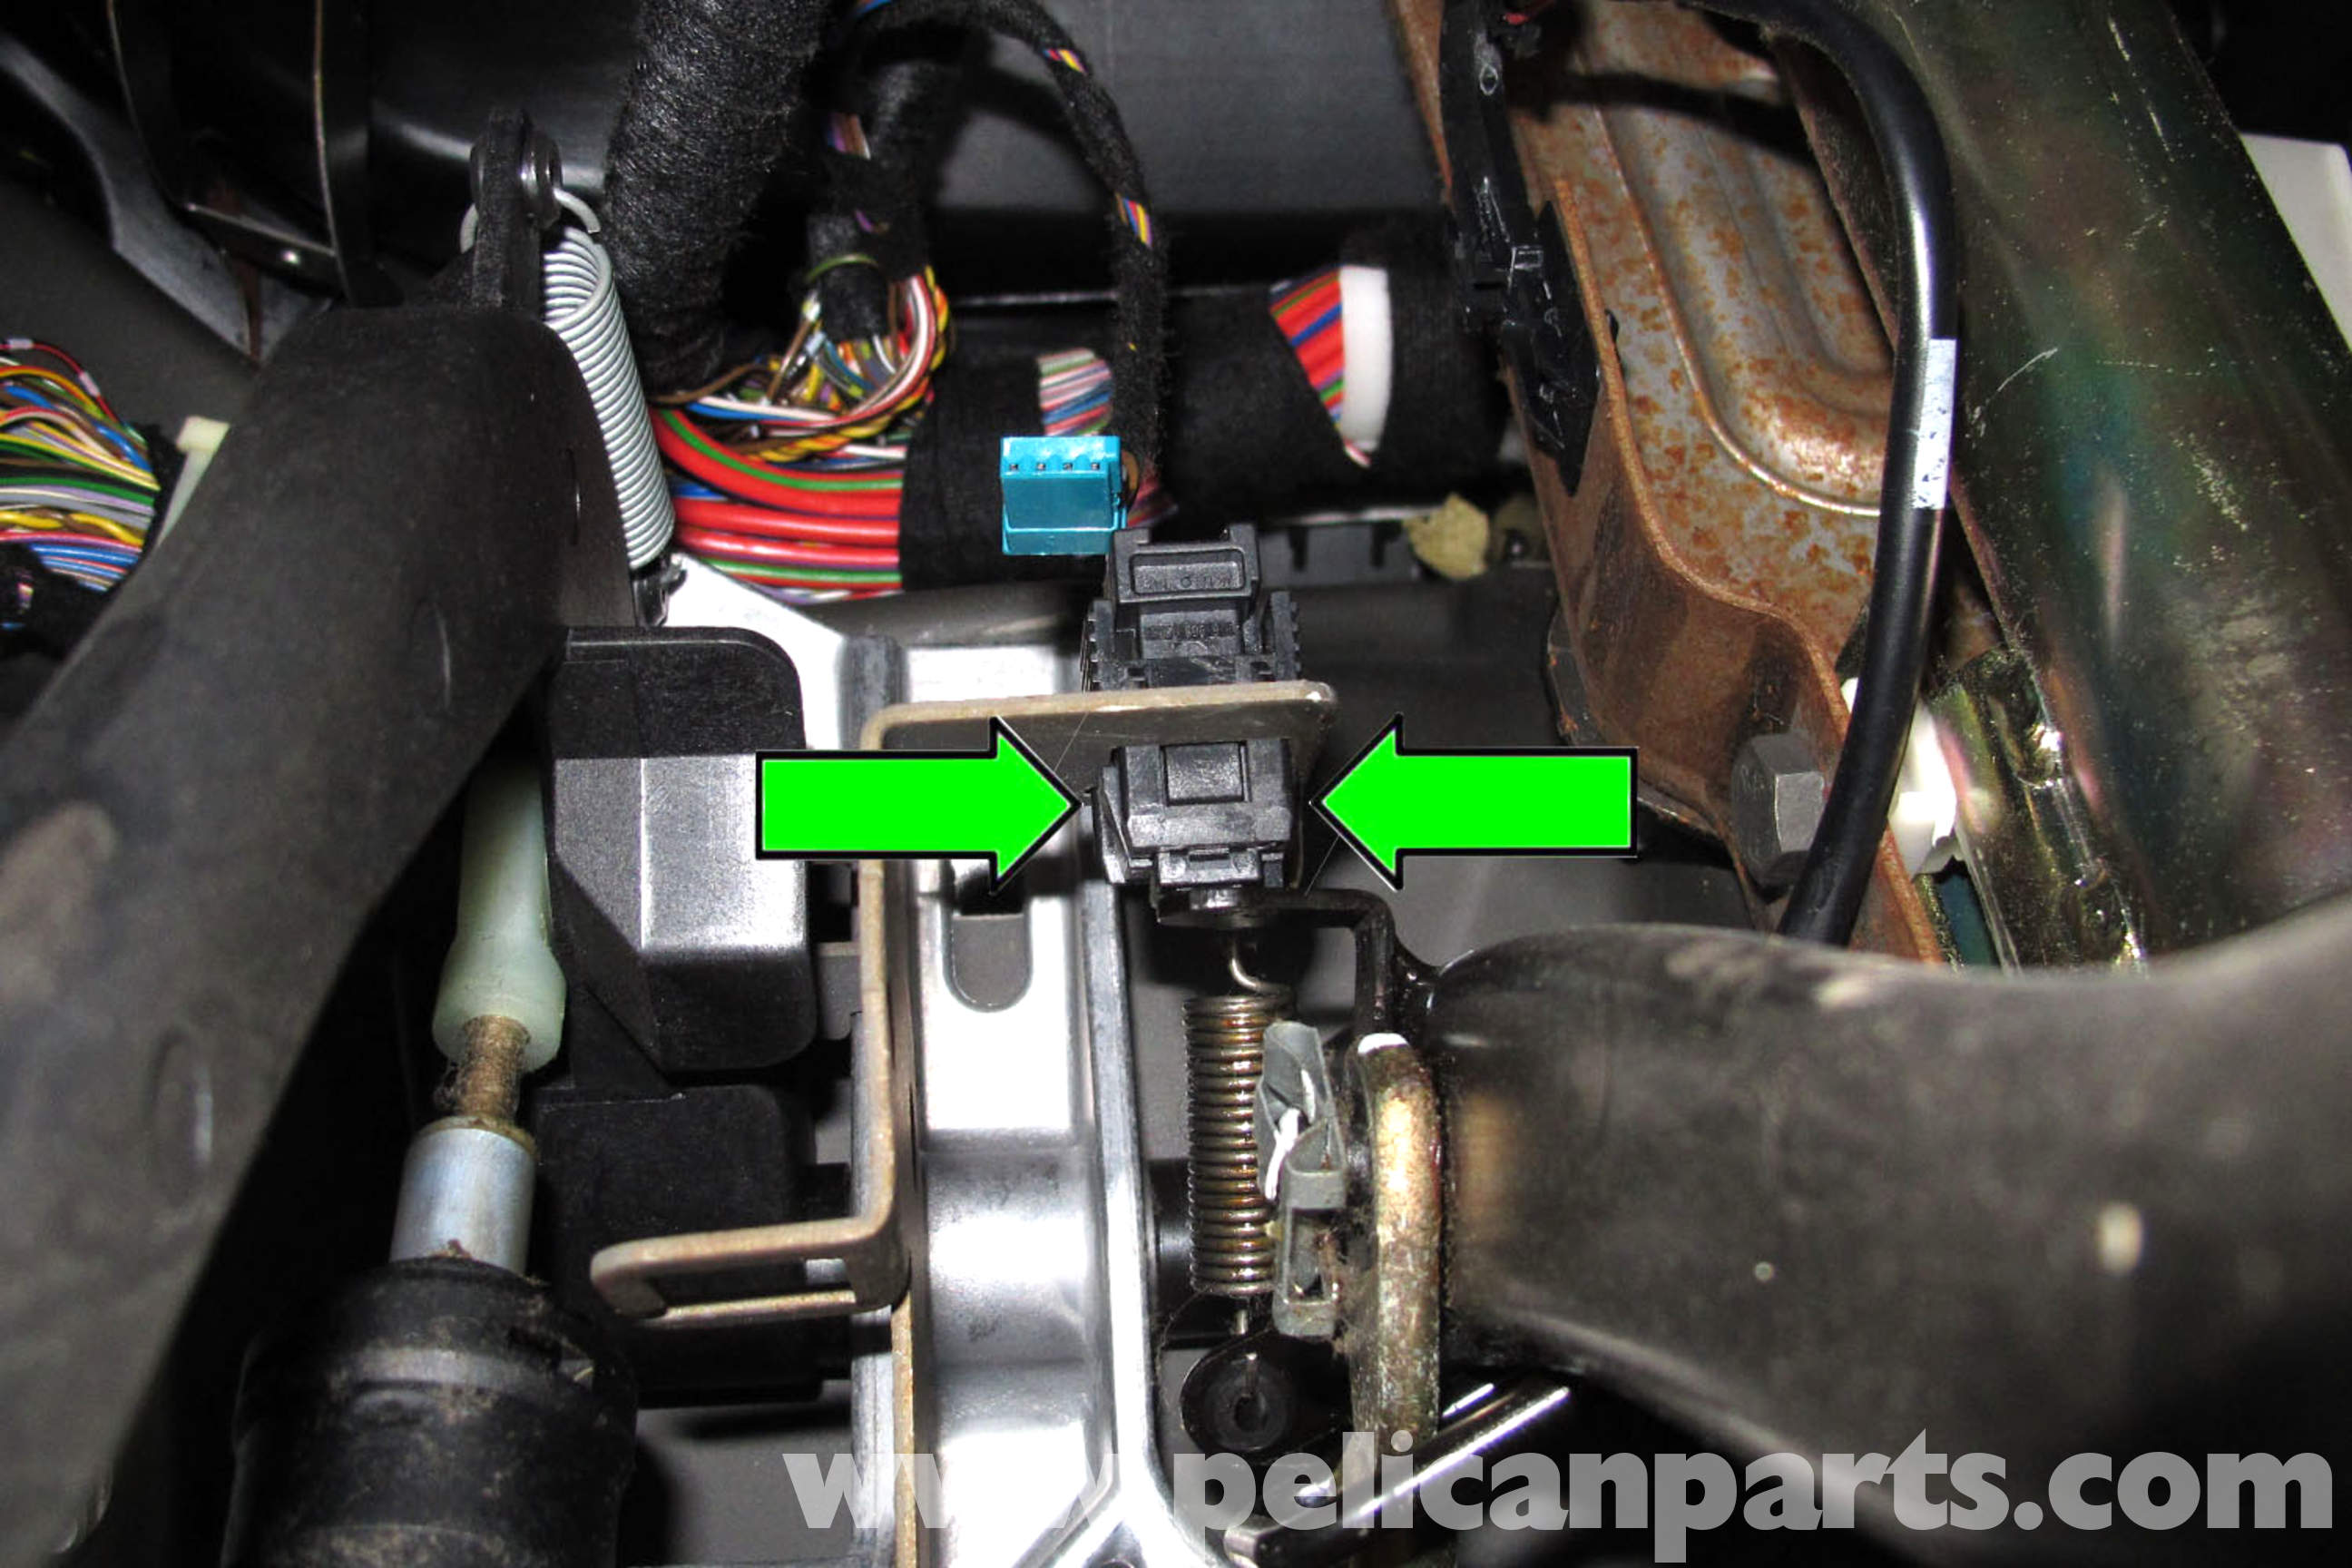 1999 Ford Expedition Gem Module Location additionally 2hrhe Inertia Switch Located 1990 Ford Ranger Xlt 2 9 L moreover 279092 Flasher Relay Here Pic further Watch further Prueba De Solenoides De Cambio 4L60E Pagina 1. on 2000 ford f 150 fuel pump relay location